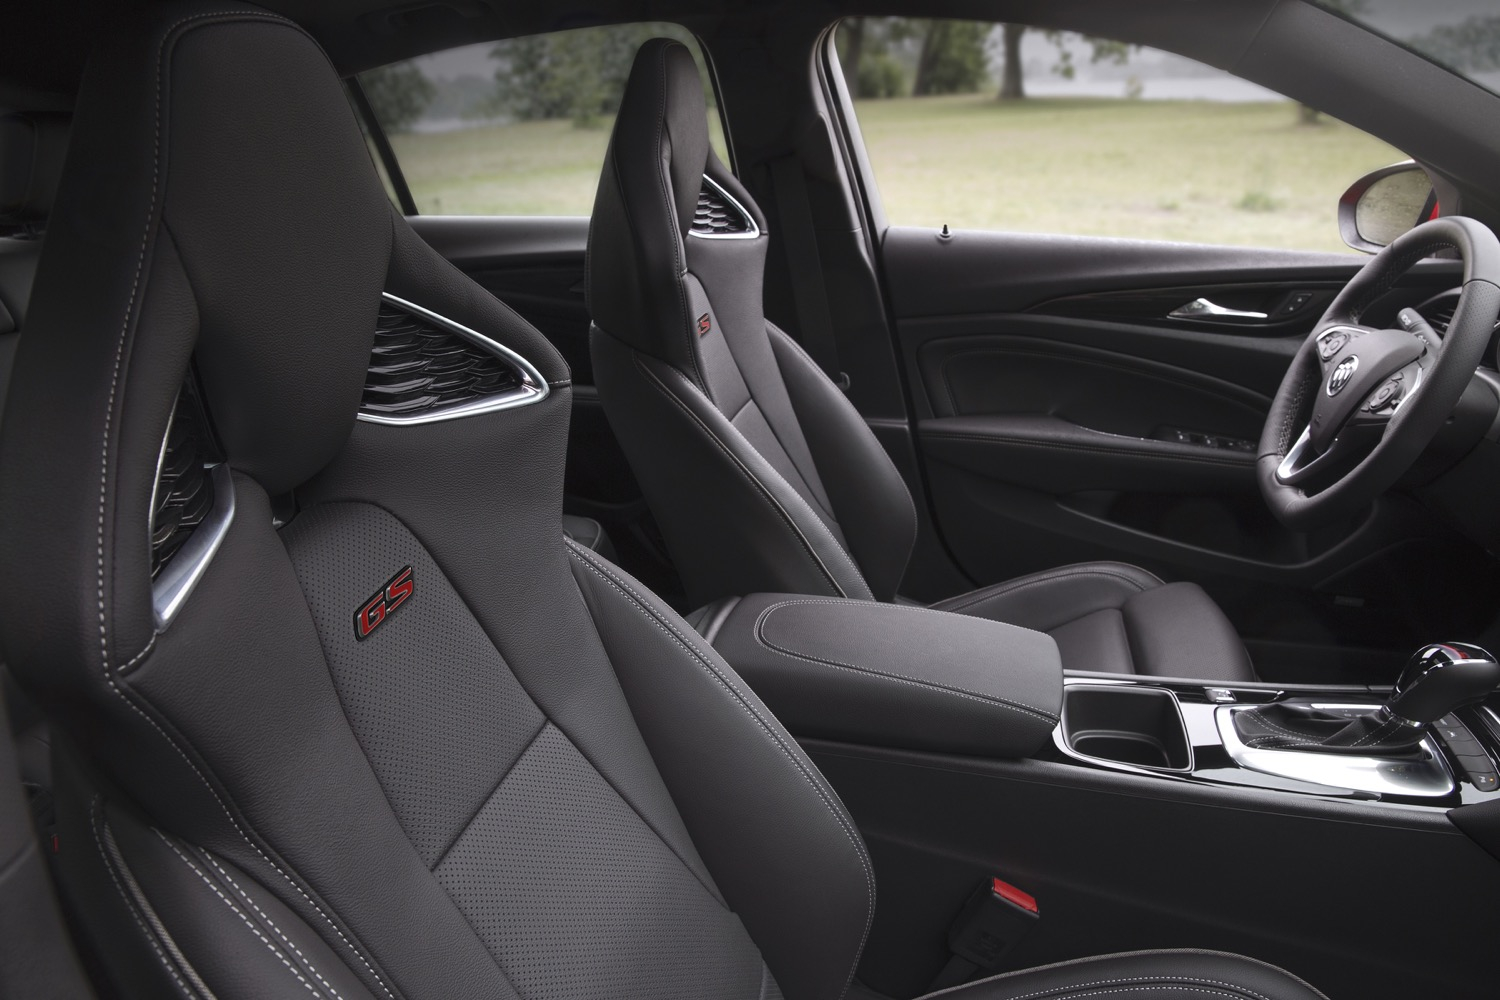 2018 Buick Regal Interior Colors   Gm Authority New 2021 Buick Regal Sportback Interior, Awd, Colors